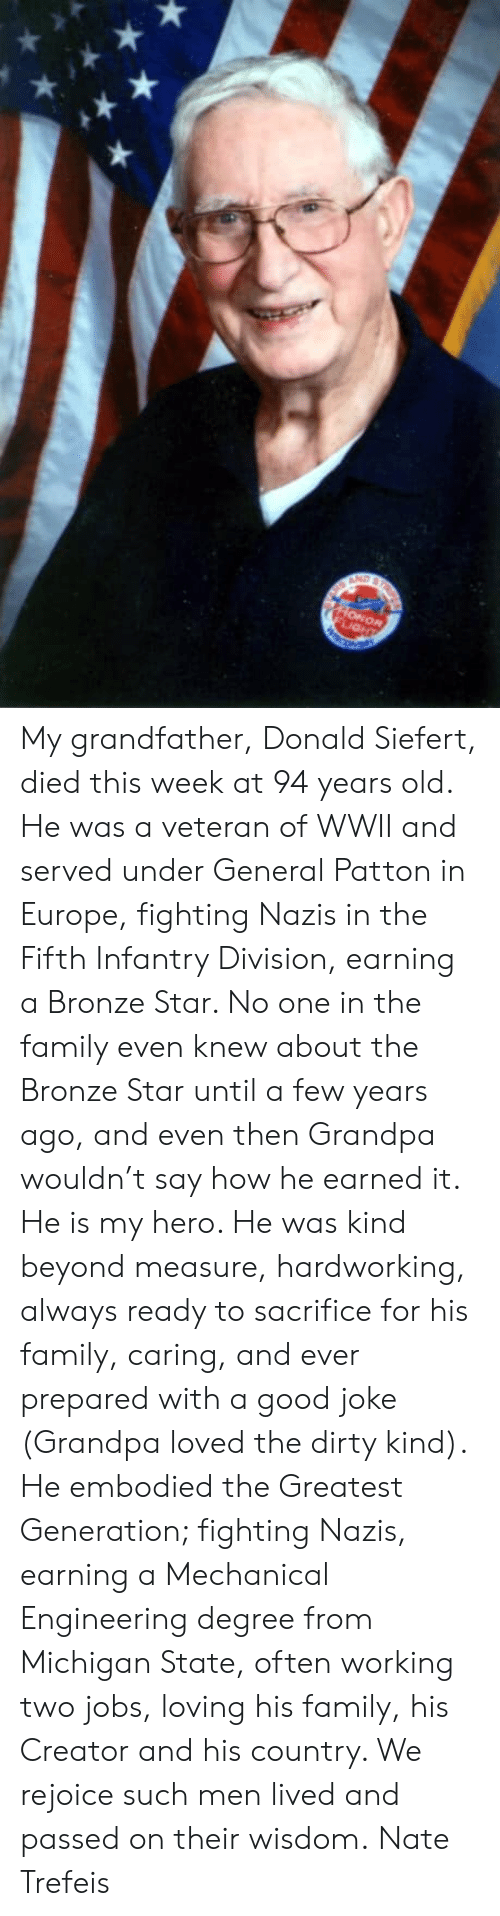 Earned It, Family, and Memes: My grandfather, Donald Siefert, died this week at 94 years old.   He was a veteran of WWII and served under General Patton in Europe, fighting Nazis in the Fifth Infantry Division, earning a Bronze Star. No one in the family even knew about the Bronze Star until a few years ago, and even then Grandpa wouldn't say how he earned it.   He is my hero. He was kind beyond measure, hardworking, always ready to sacrifice for his family, caring, and ever prepared with a good joke (Grandpa loved the dirty kind).   He embodied the Greatest Generation; fighting Nazis, earning a Mechanical Engineering degree from Michigan State, often working two jobs, loving his family, his Creator and his country.   We rejoice such men lived and passed on their wisdom.  Nate Trefeis